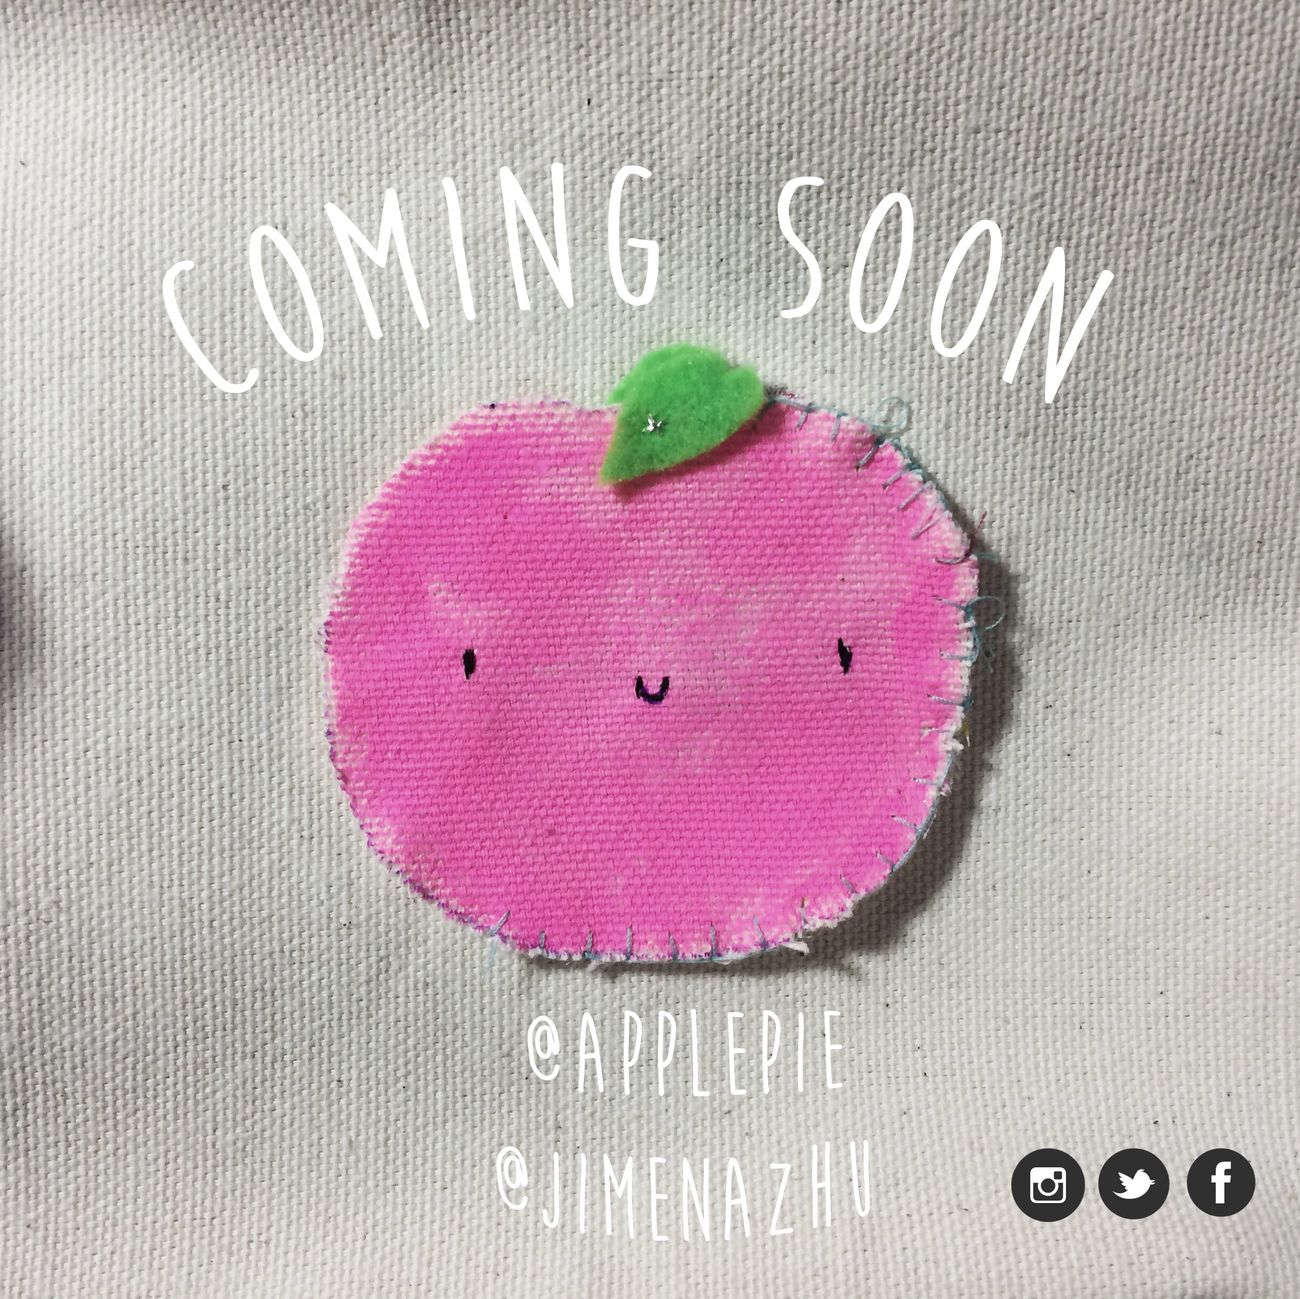 Byjimenazhu Applepie KAWAII